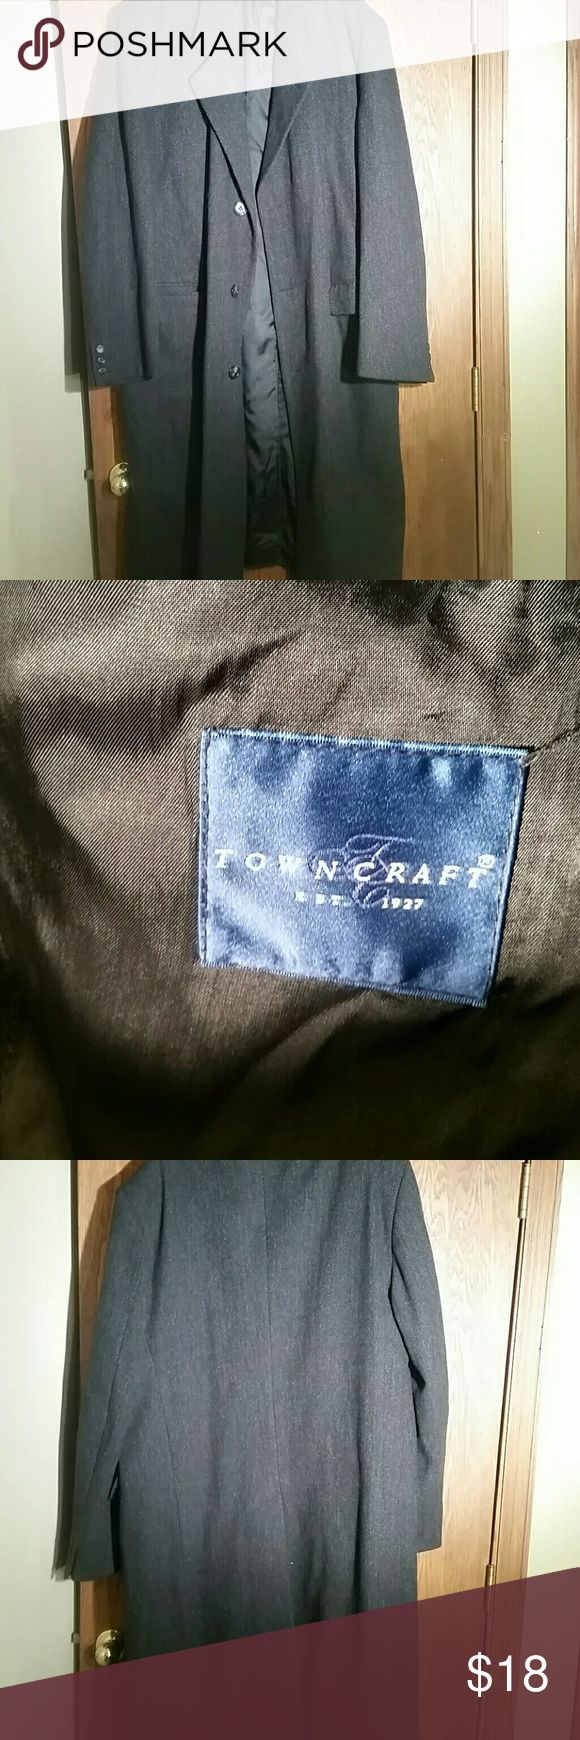 Men Dress Coat by Town Craft Size 44 L Excellent condition Towncraft Jackets & Coats Trench Coats